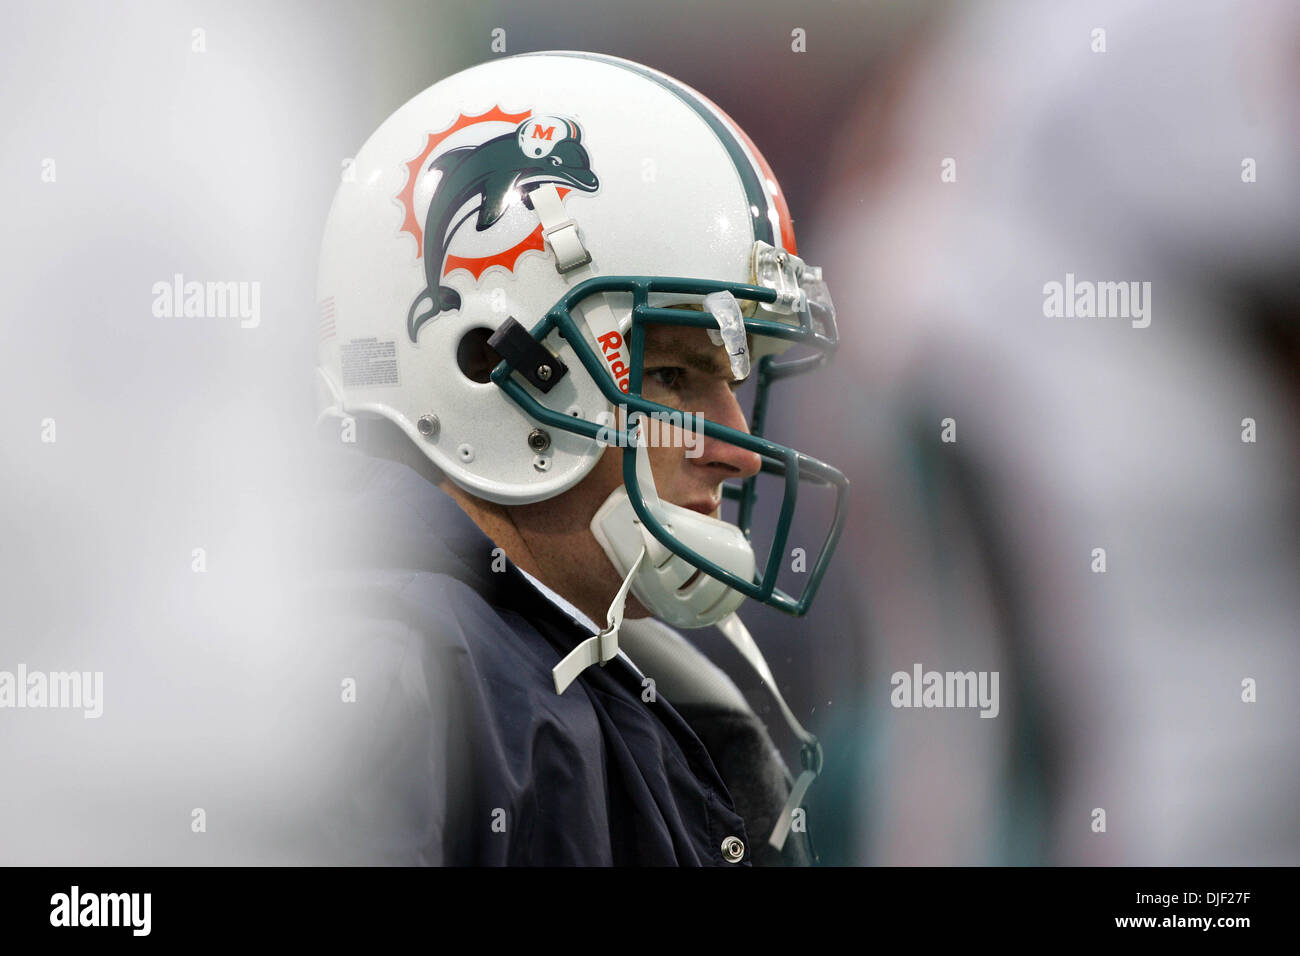 Dec 09, 2007 - Buffalo, New York, USA - Dolphins JOHN BECK watches from the sidelines as Cleo Lemon takes over in Stock Photo